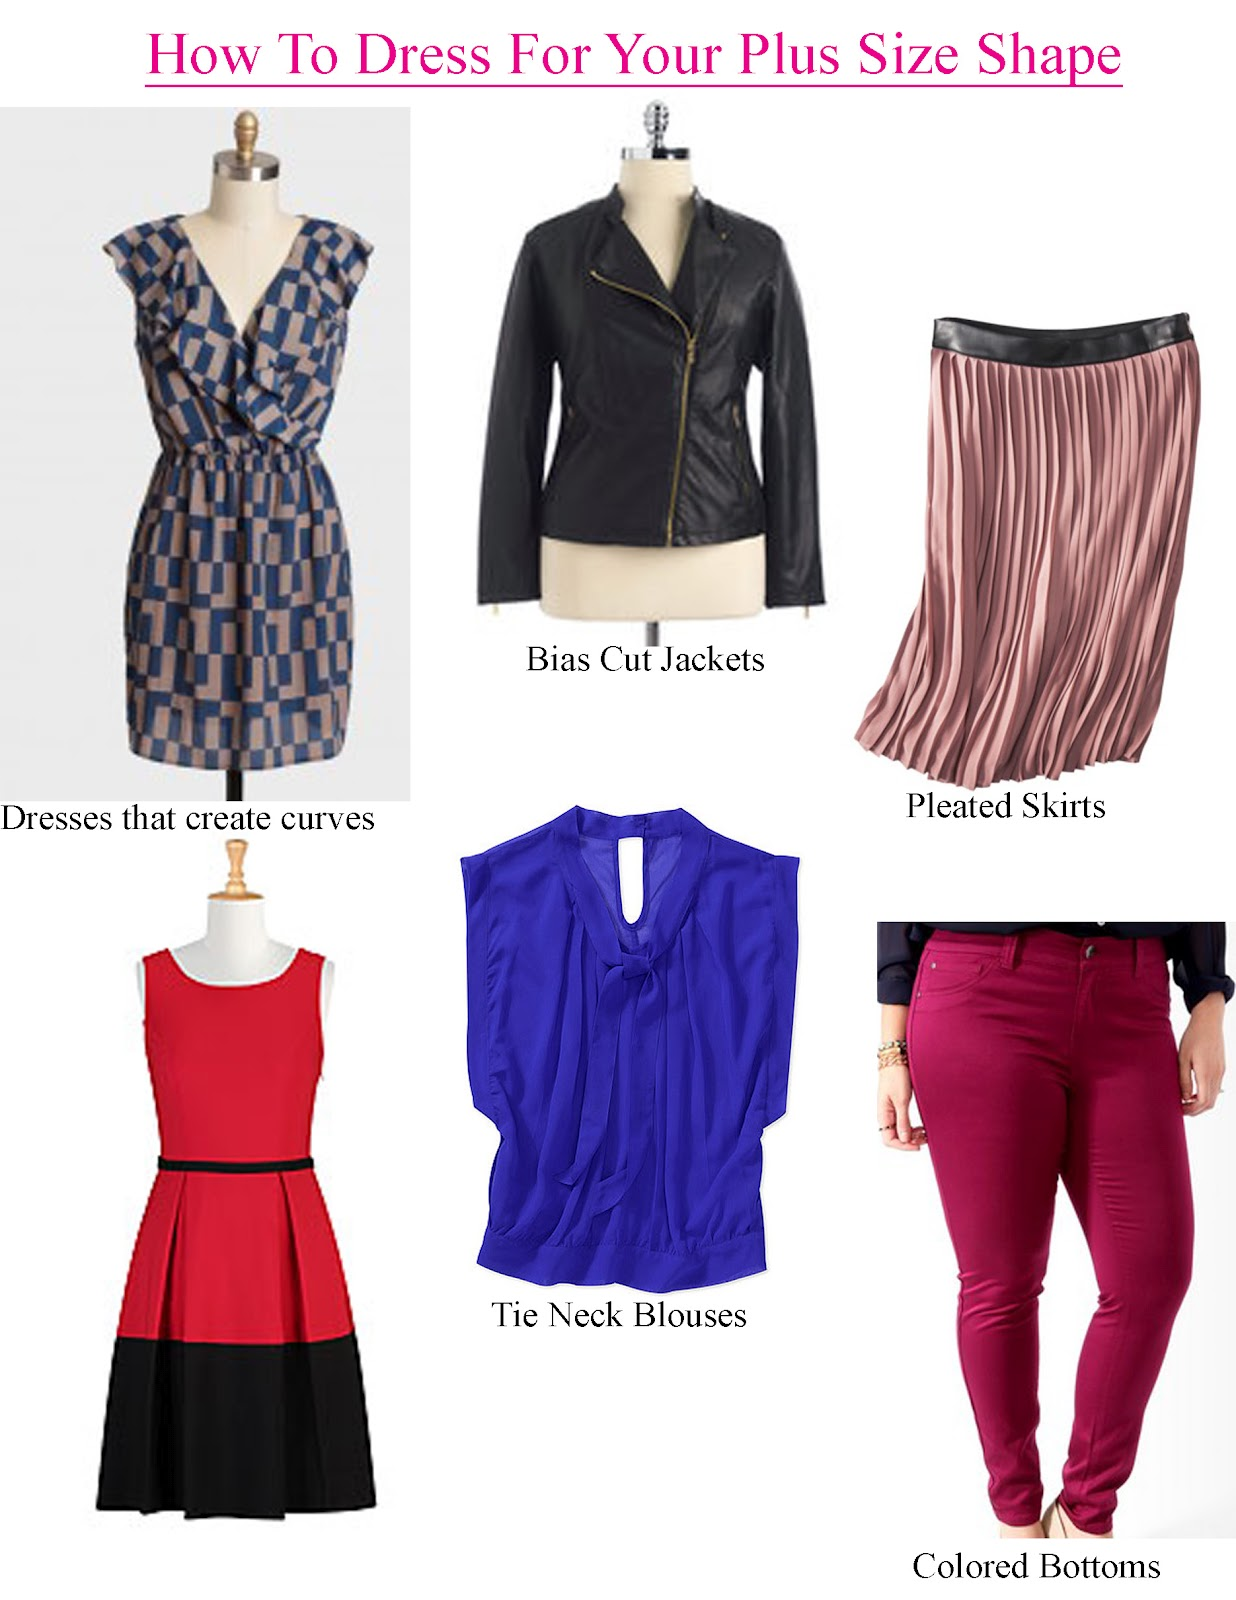 Shopping How To Dress Your Shape When You 39 Re Plus Size Part I Stylish Curves